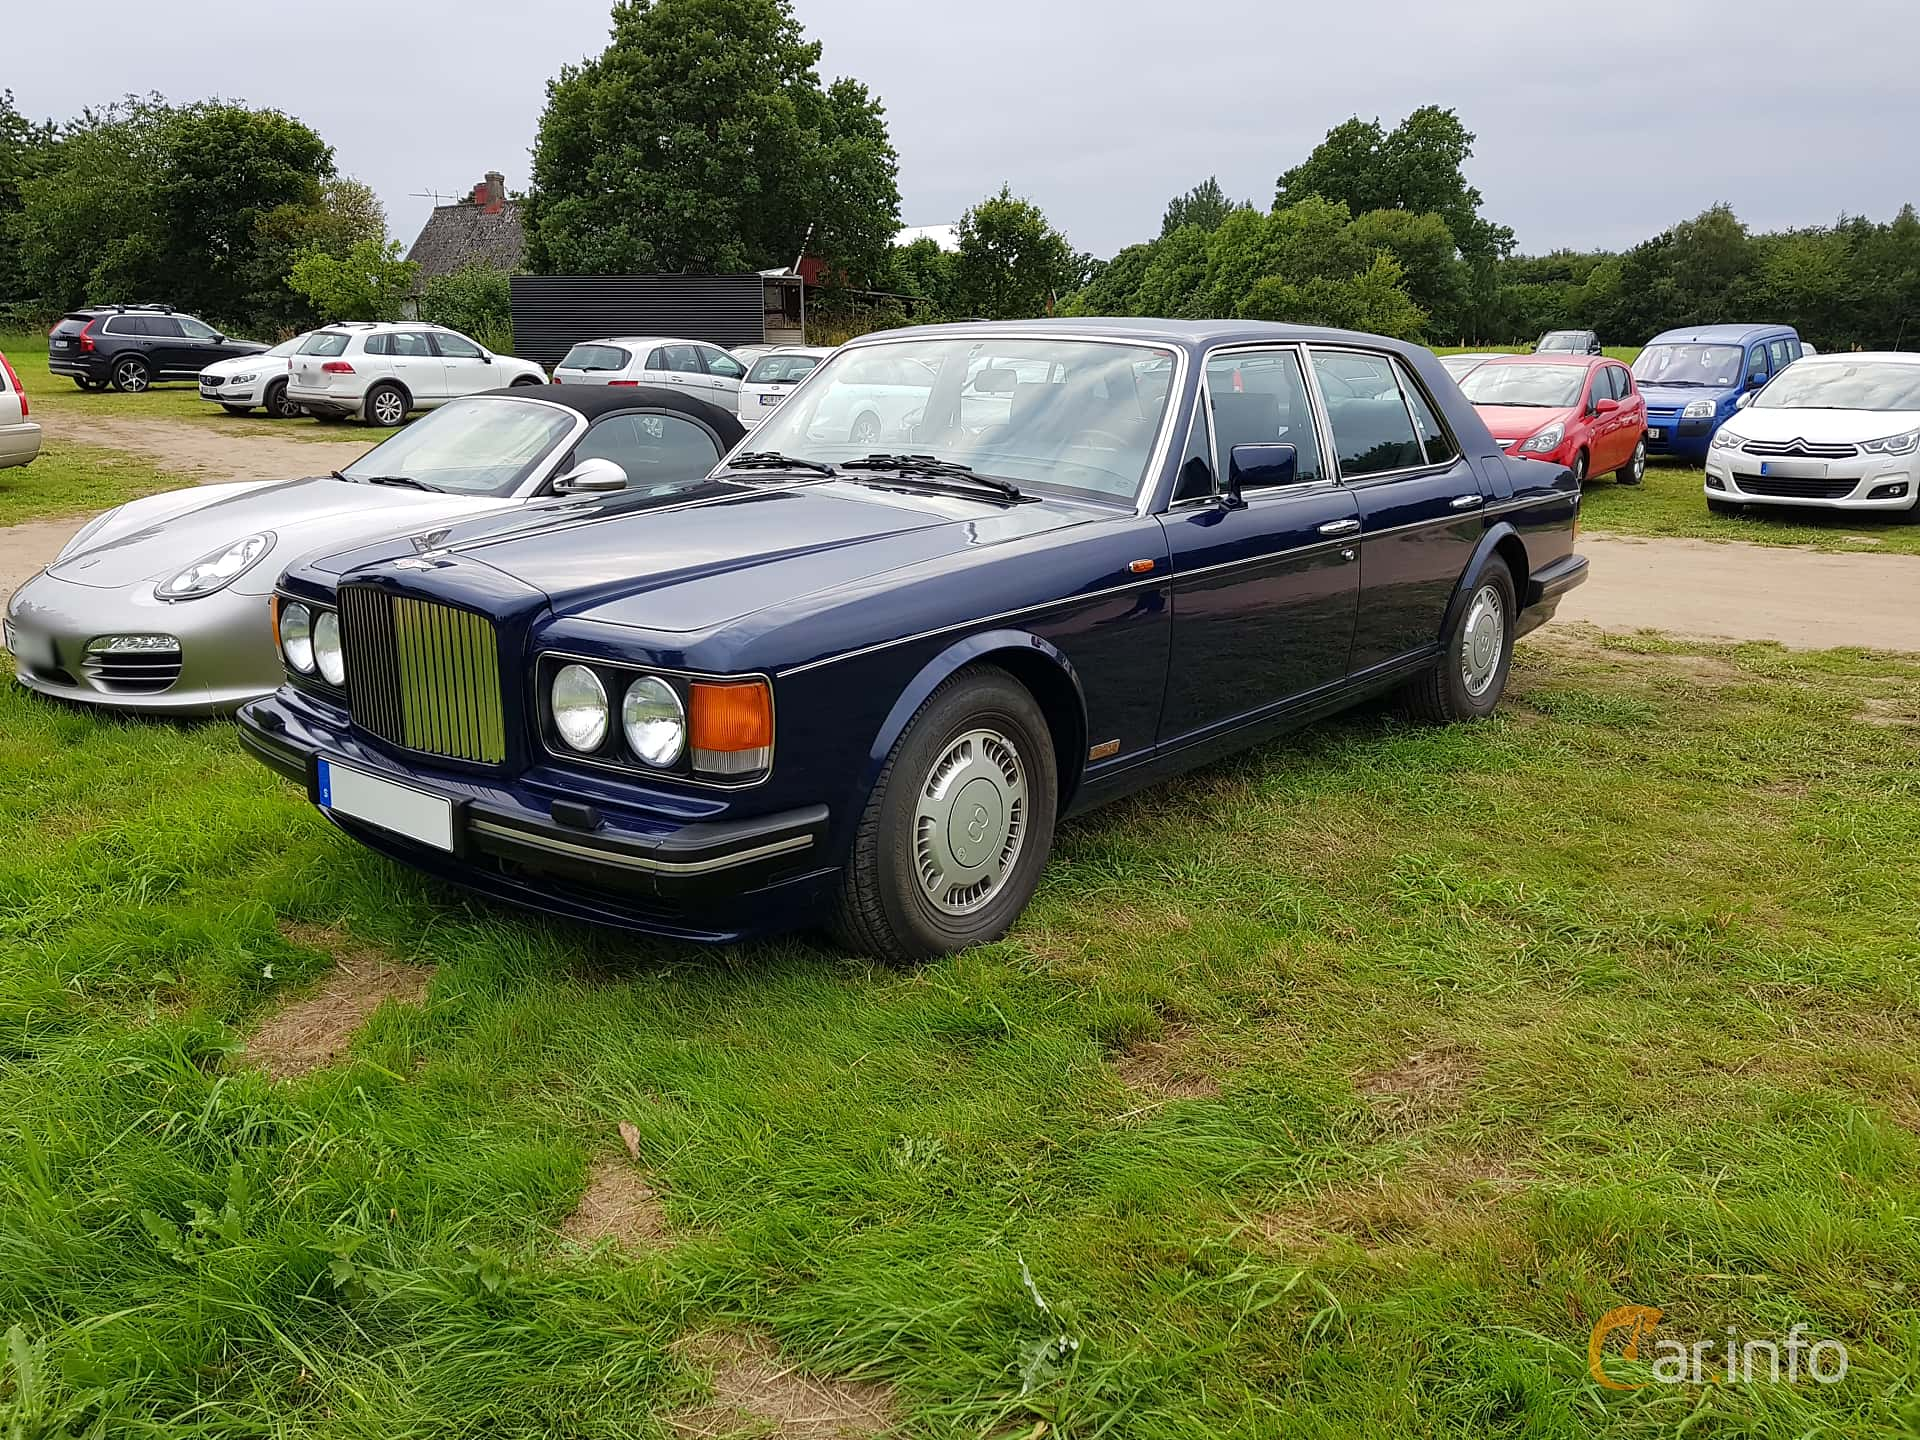 Bentley Turbo R 6.75 V8 Automatic, 313hp, 1990